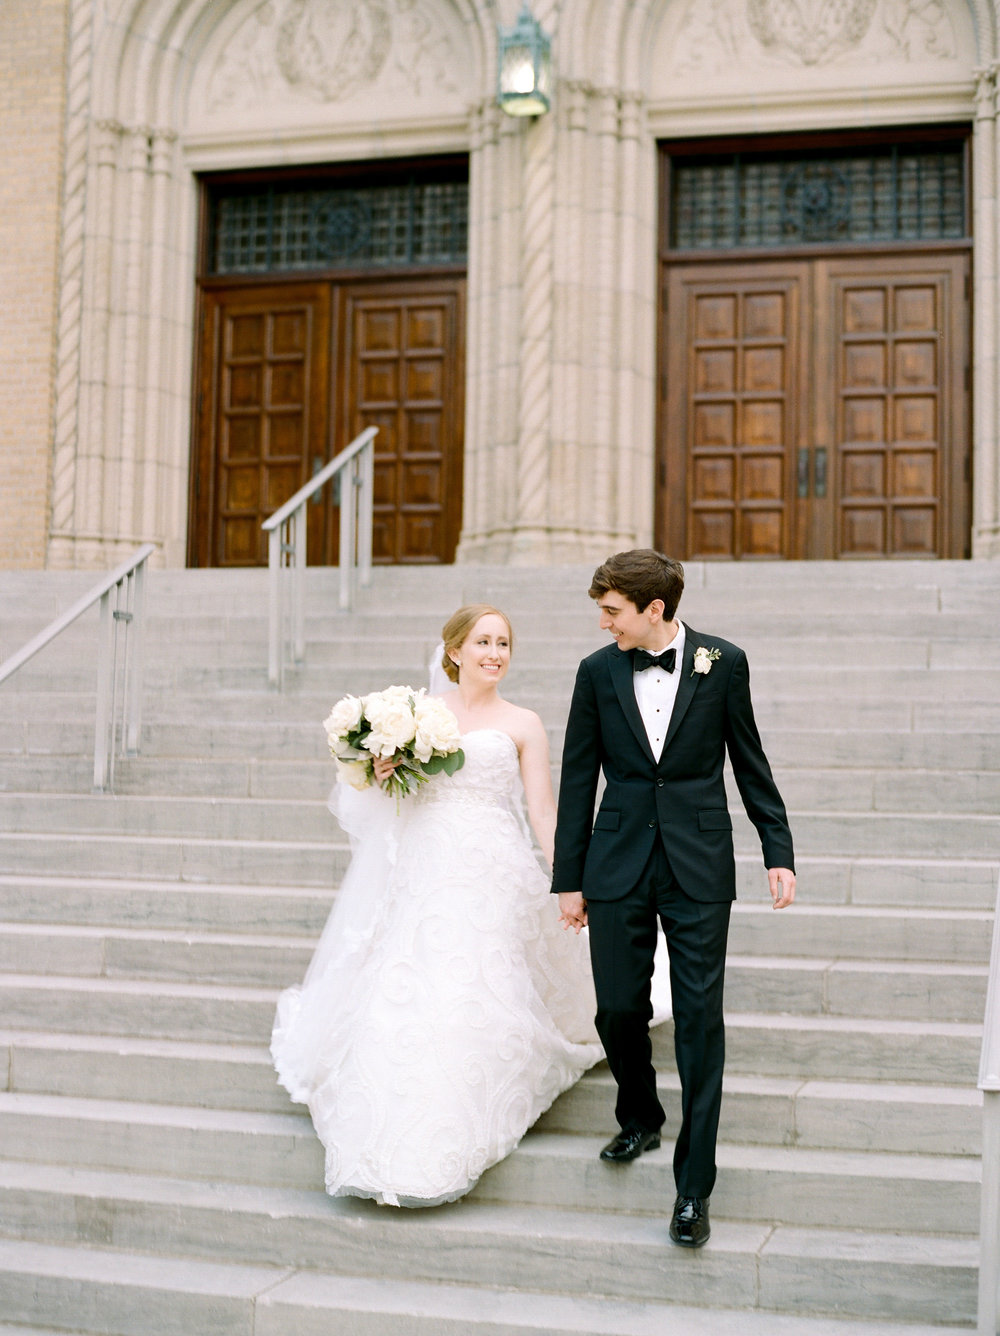 Fine-Art-Film-Houston-Wedding-Photographer-Best-Top-Luxury-Texas-Austin-Dallas-Destination-Dana-Fernandez-Photography-River-Oaks-Country-Club-South-Main-Baptist-Ceremony-Reception-Wedding-32.jpg